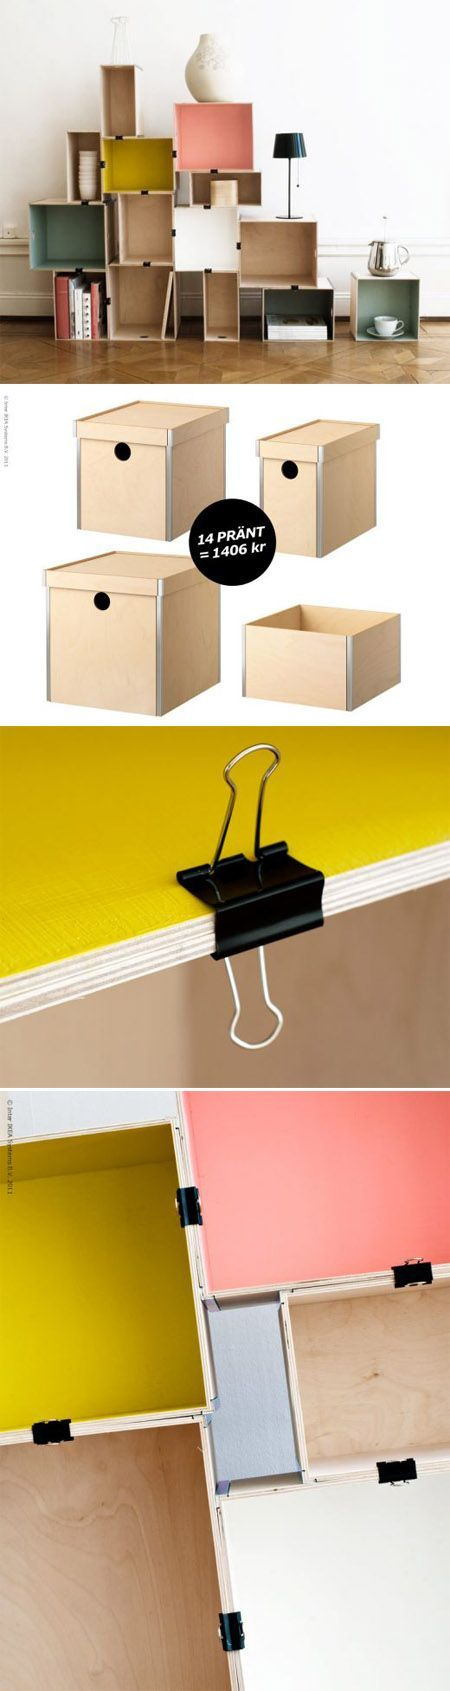 étagères Boîte de Ikea, se rapportant à l'ordinaire Clips Classeur Office | 25 Awesome DIY Ideas For Bookshelves